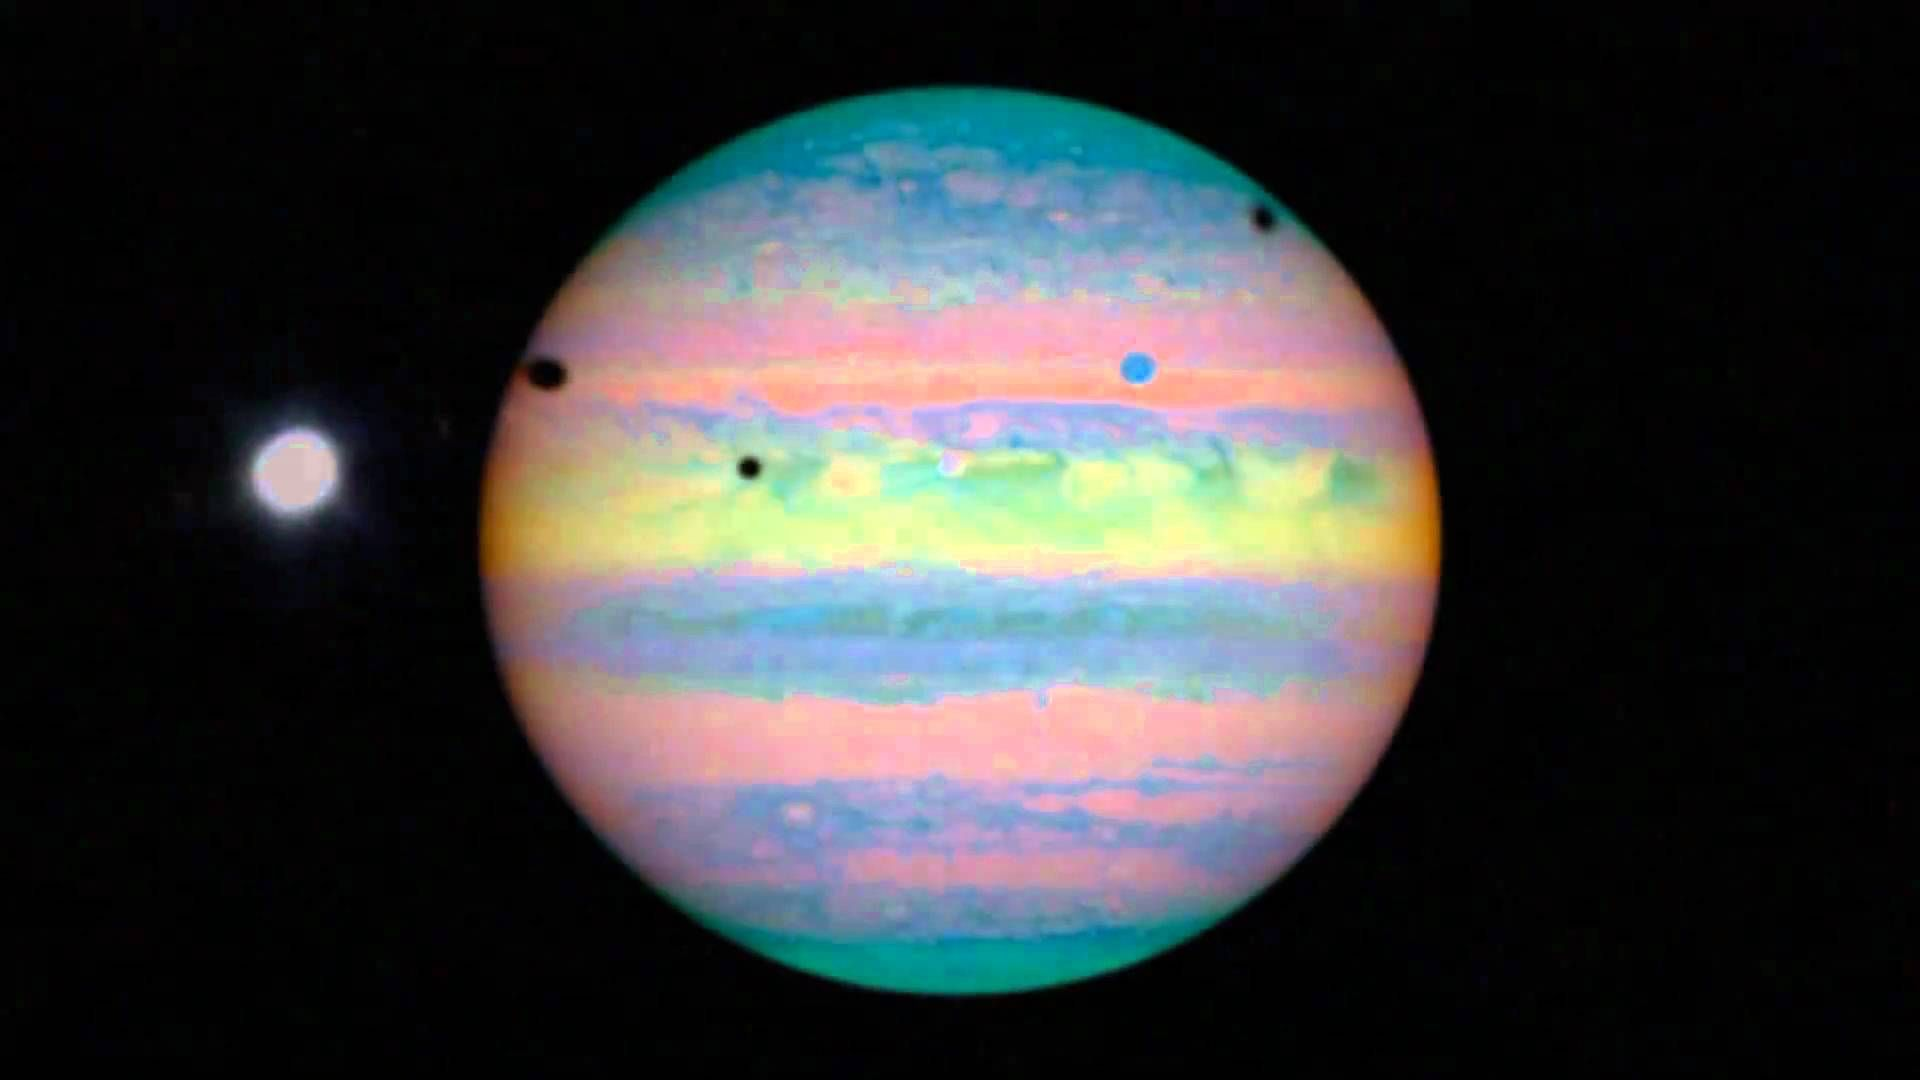 fake planet pictures - Google Search (With images) | Space ...